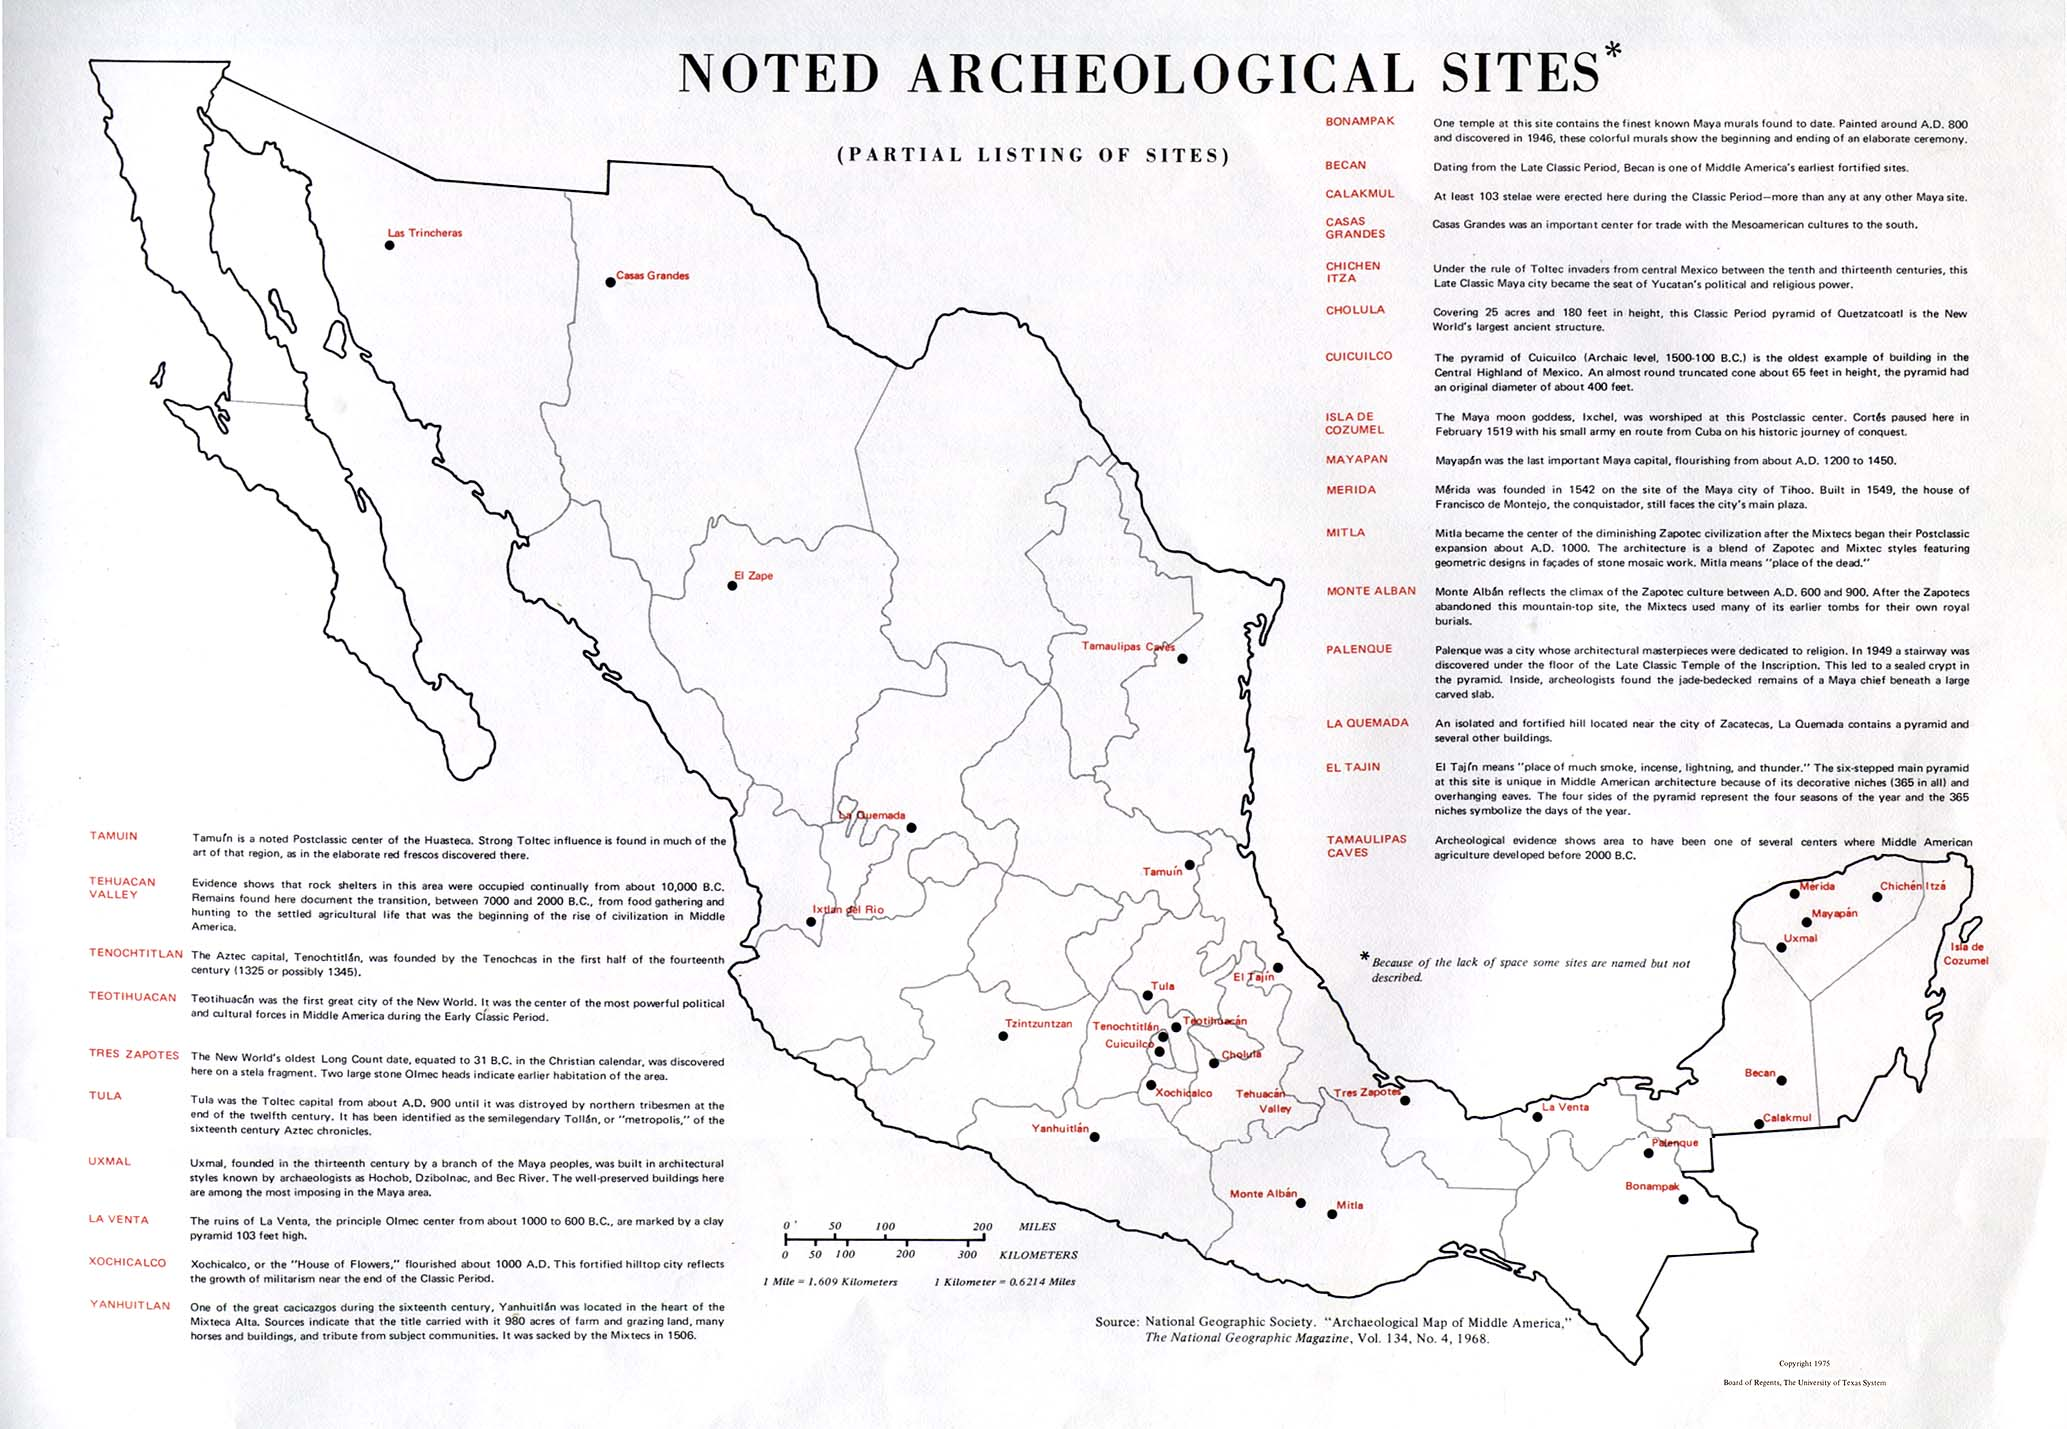 025 Research Paper Noted Archeological Sites In Mexico Good Topics For World History Impressive Papers Full